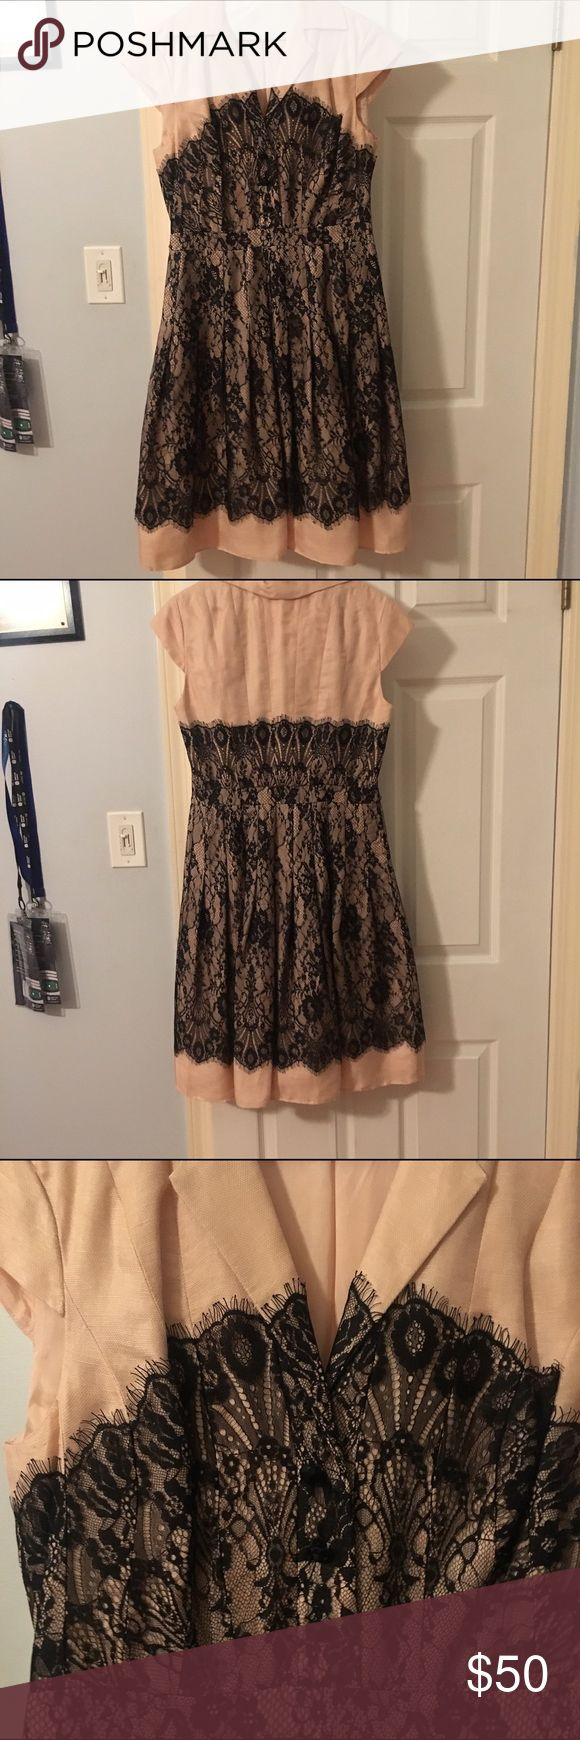 Kay Unger dress size 8 Gently worn stunning dress from Kay Unger New York. Size 8 Kay Unger Dresses